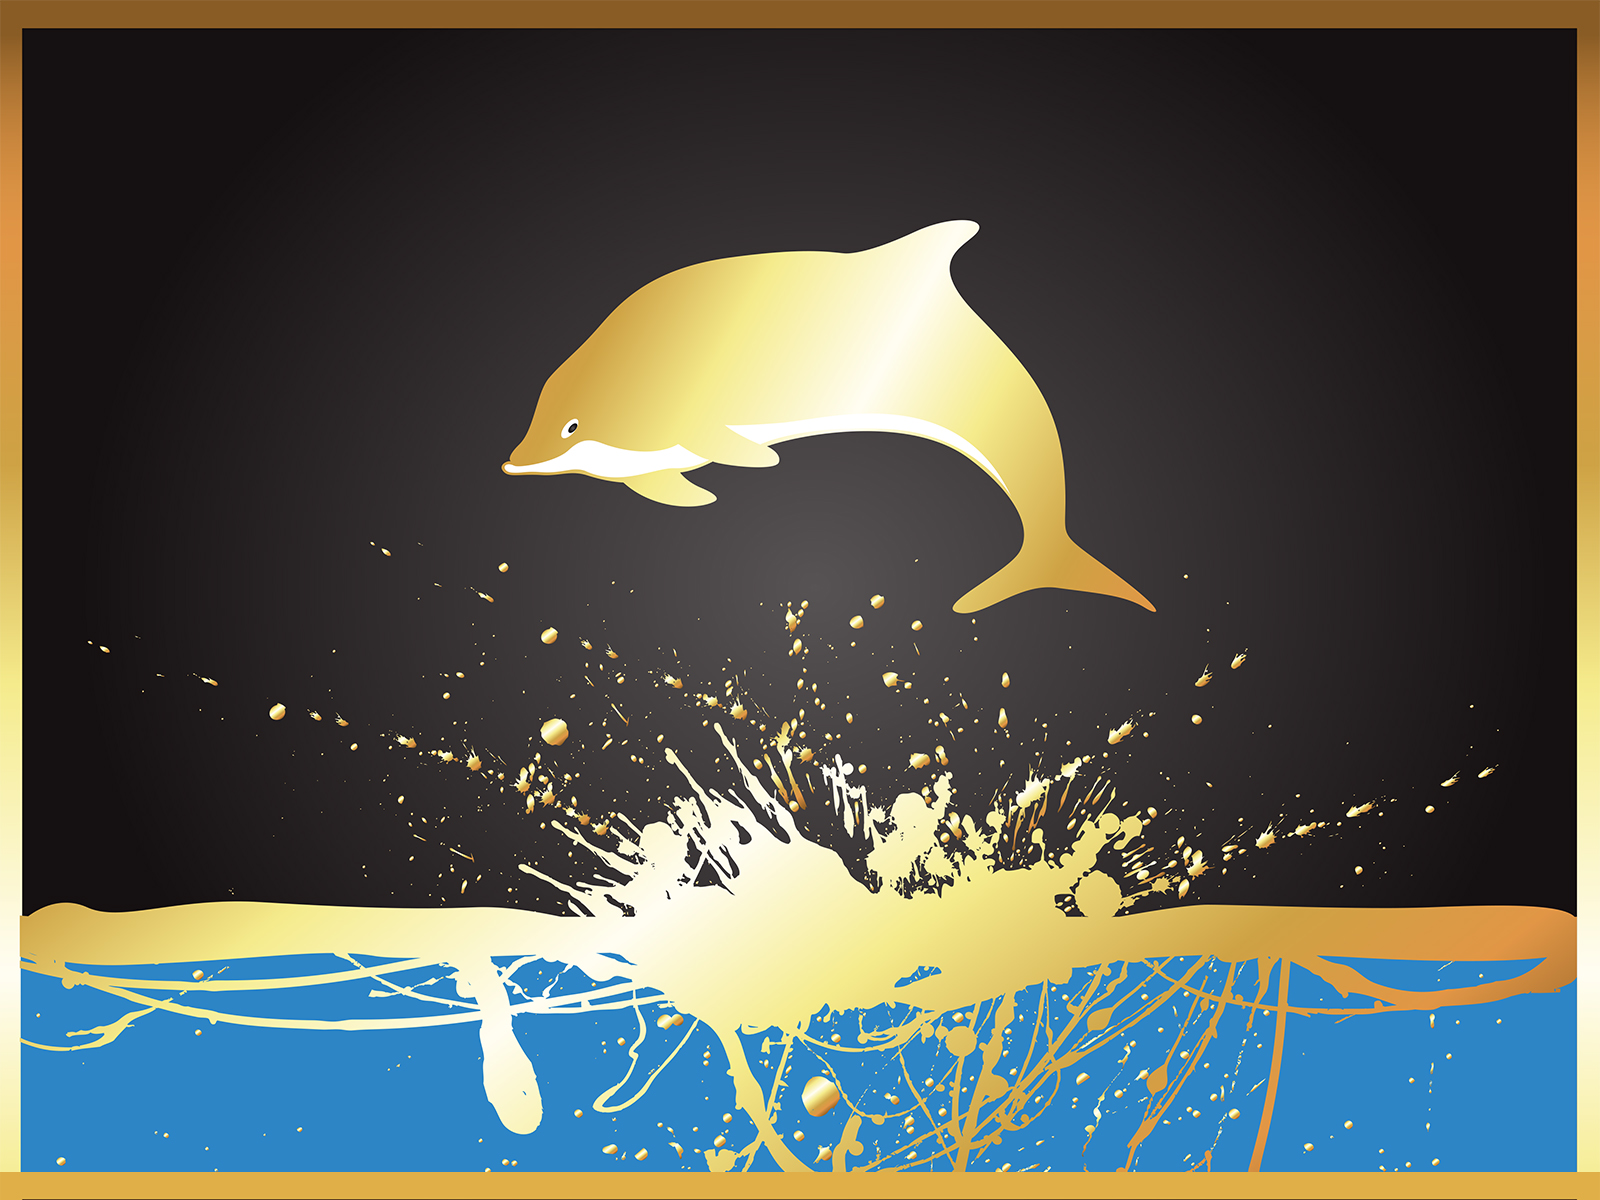 Golden Dolphin Backgrounds | Animals, Black, Blue Templates | Free ...